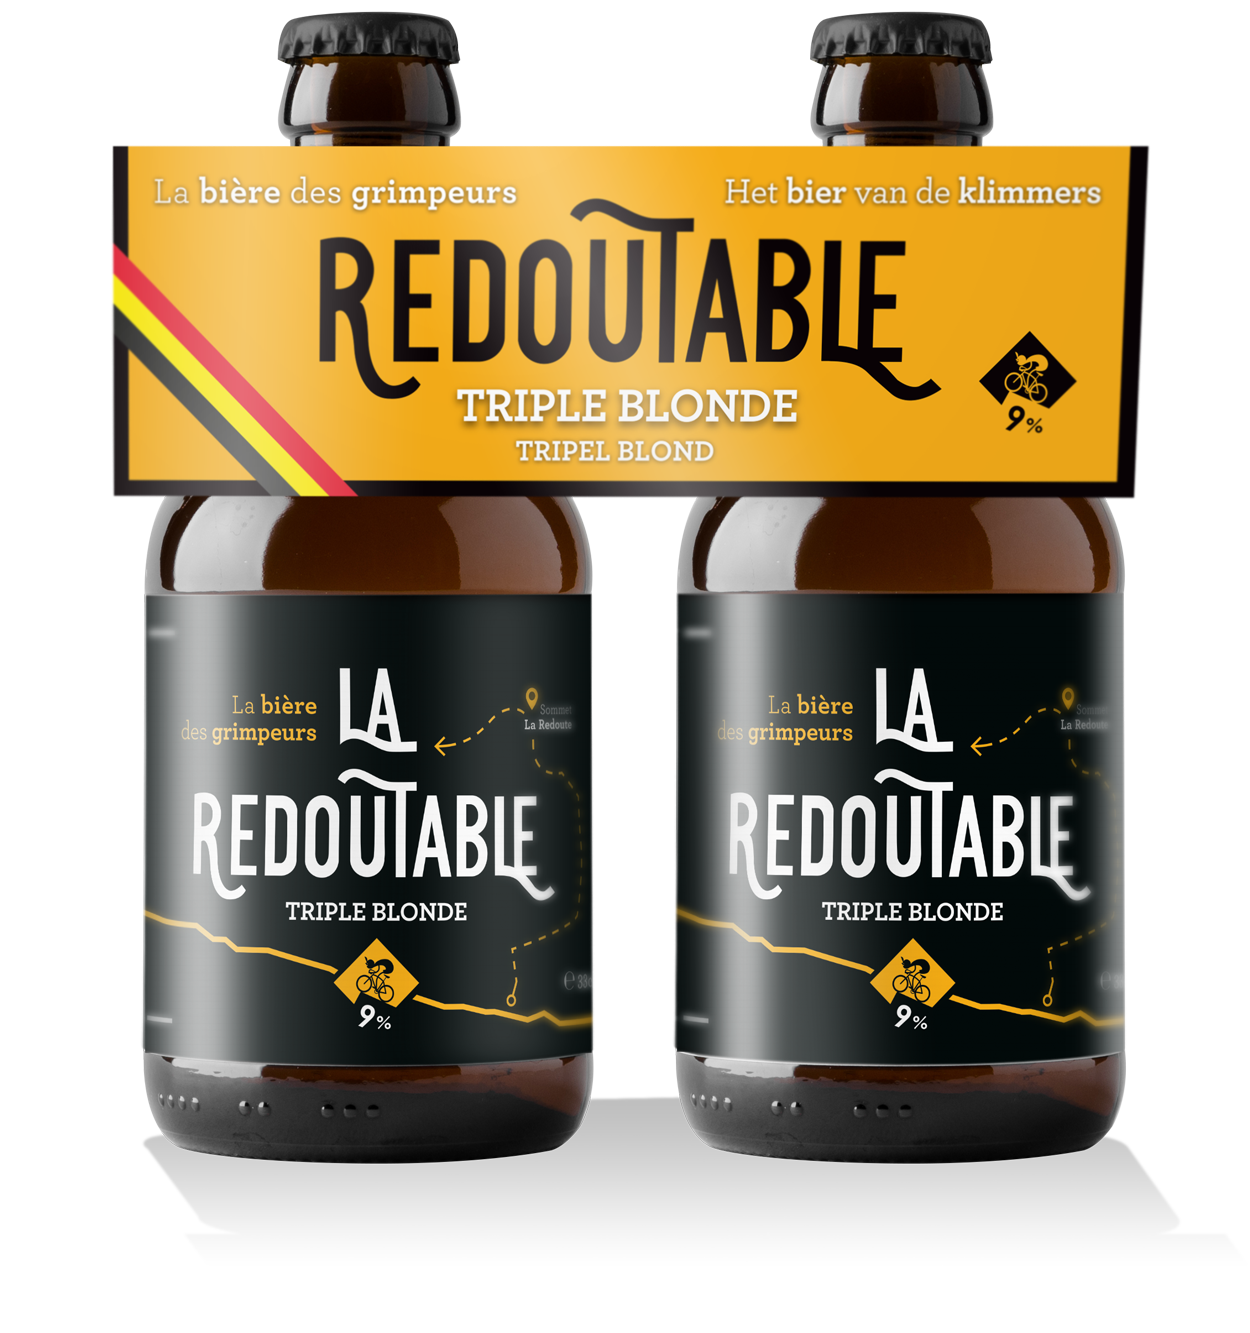 Le 4 pack REDOUTABLE 2020 | La Redoutable